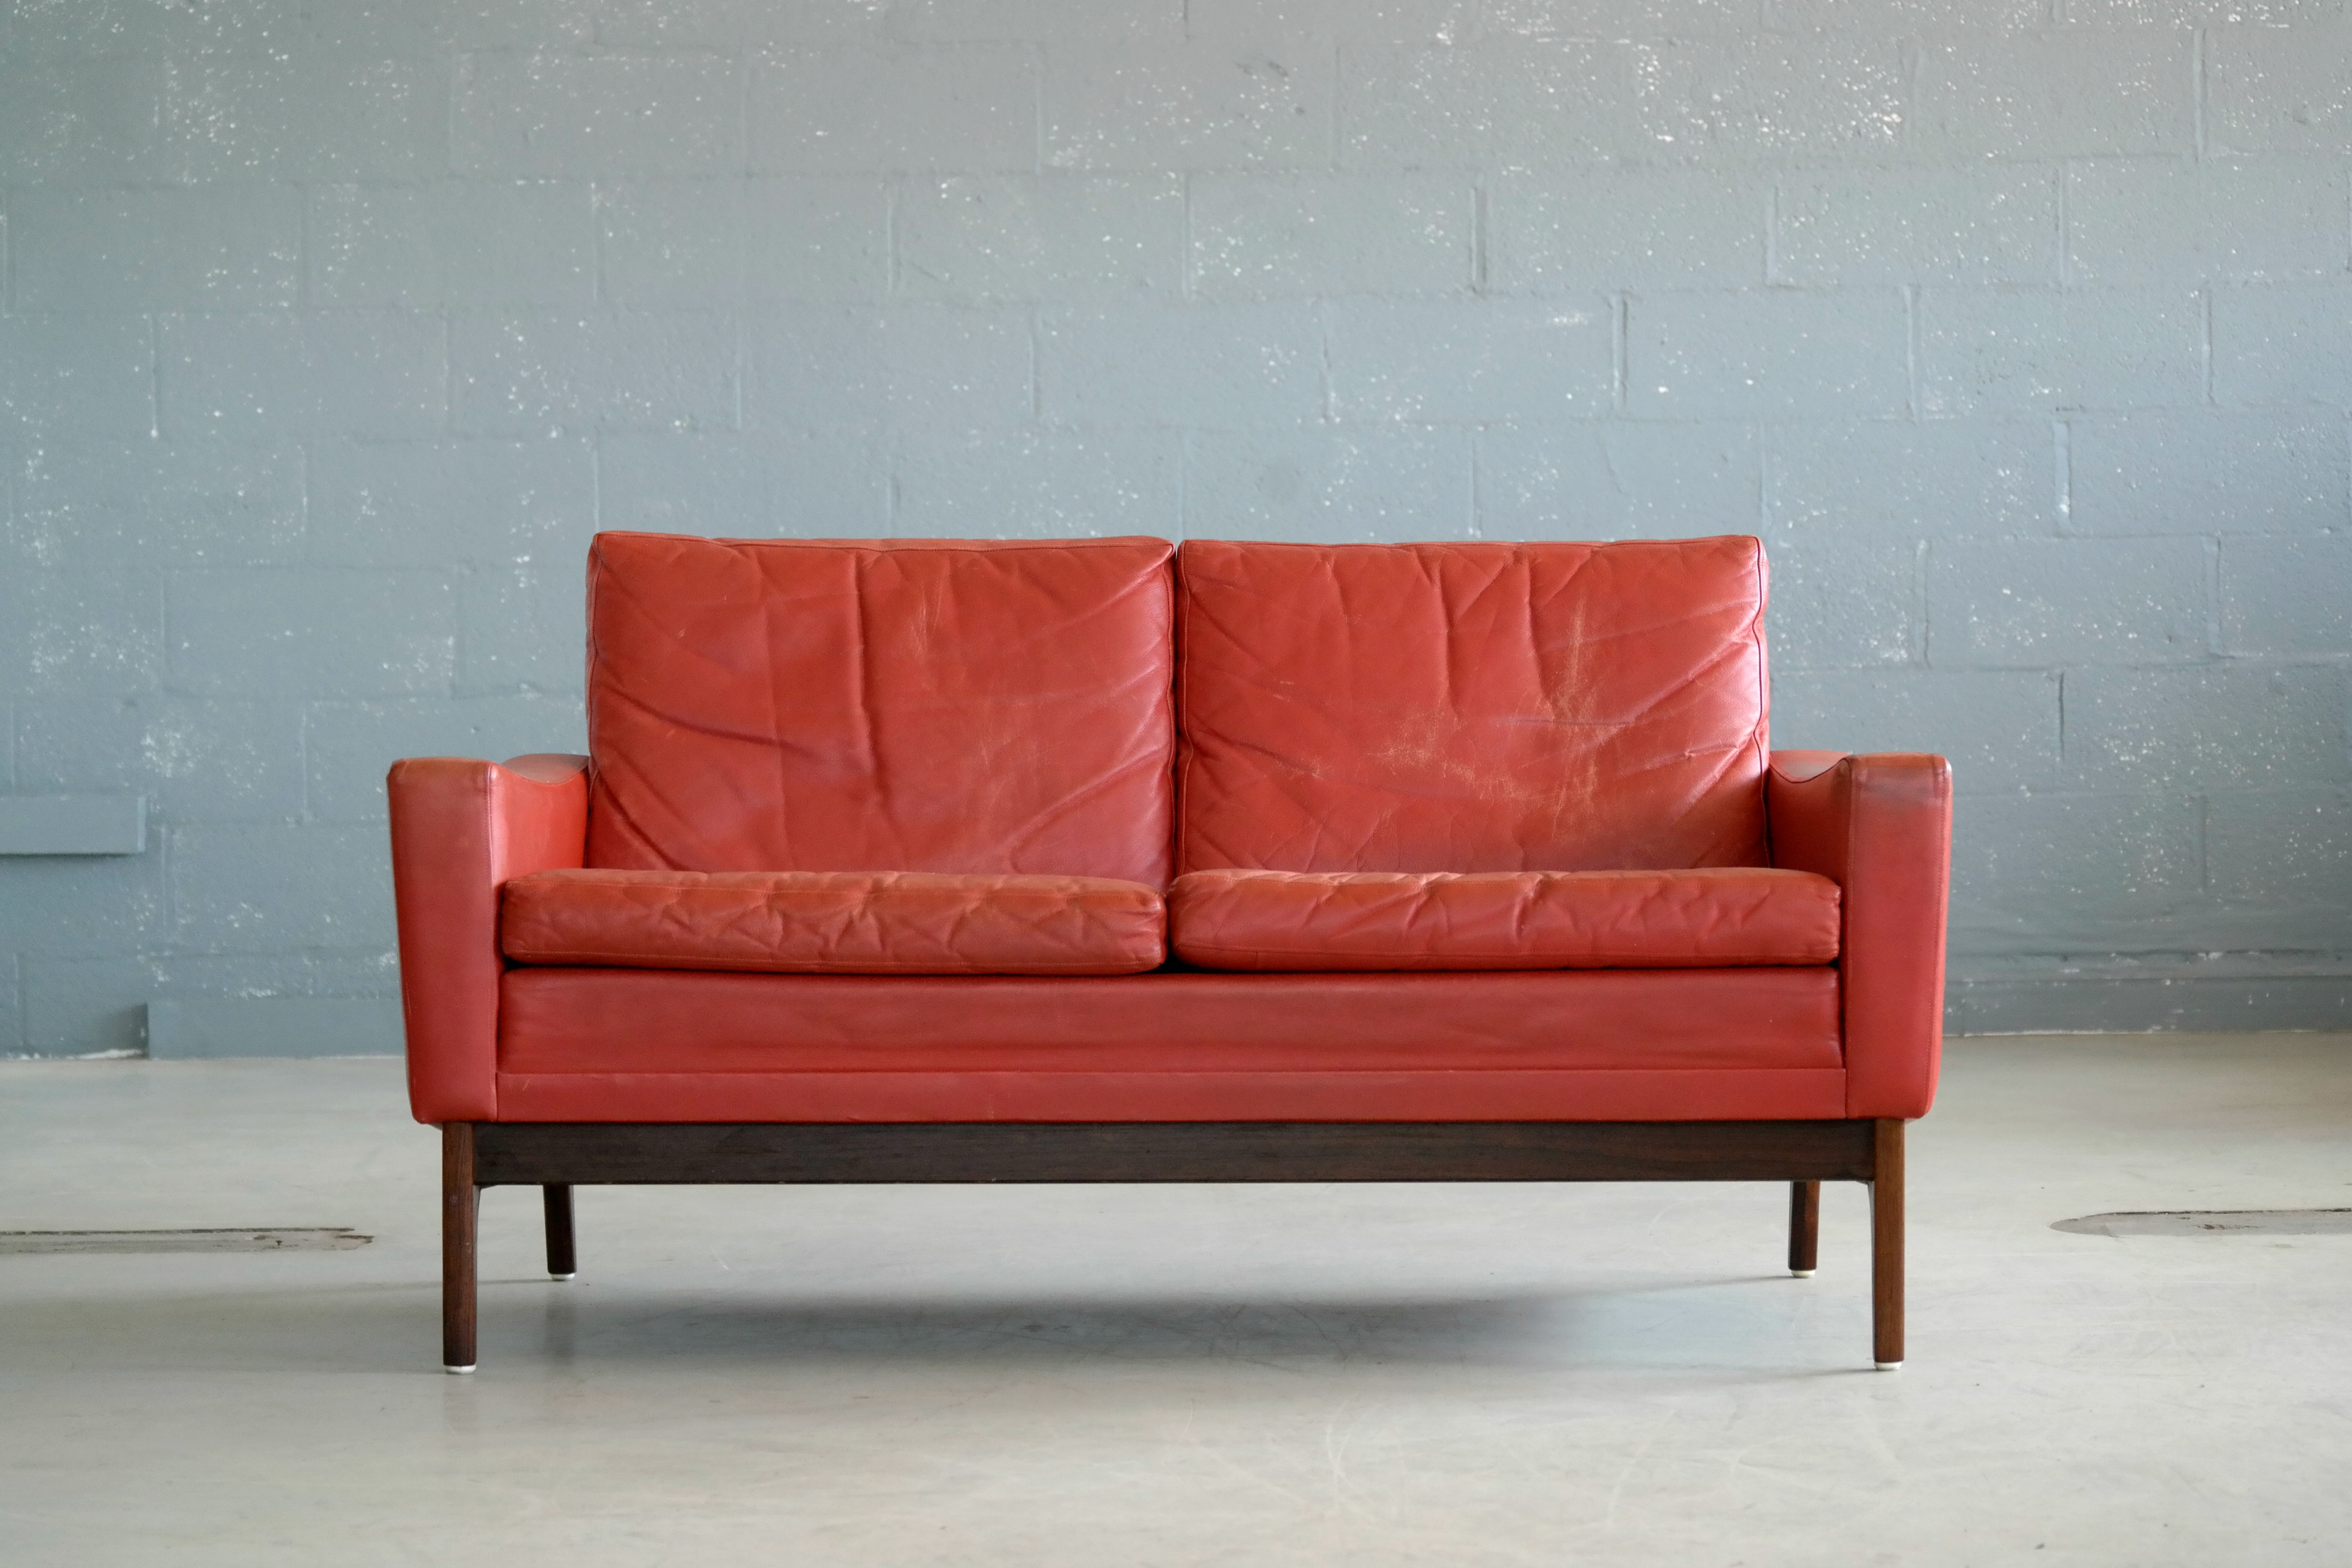 Classic Danish Mid Century Modern Sofa In Red Leather And Rosewood Base    Image 3